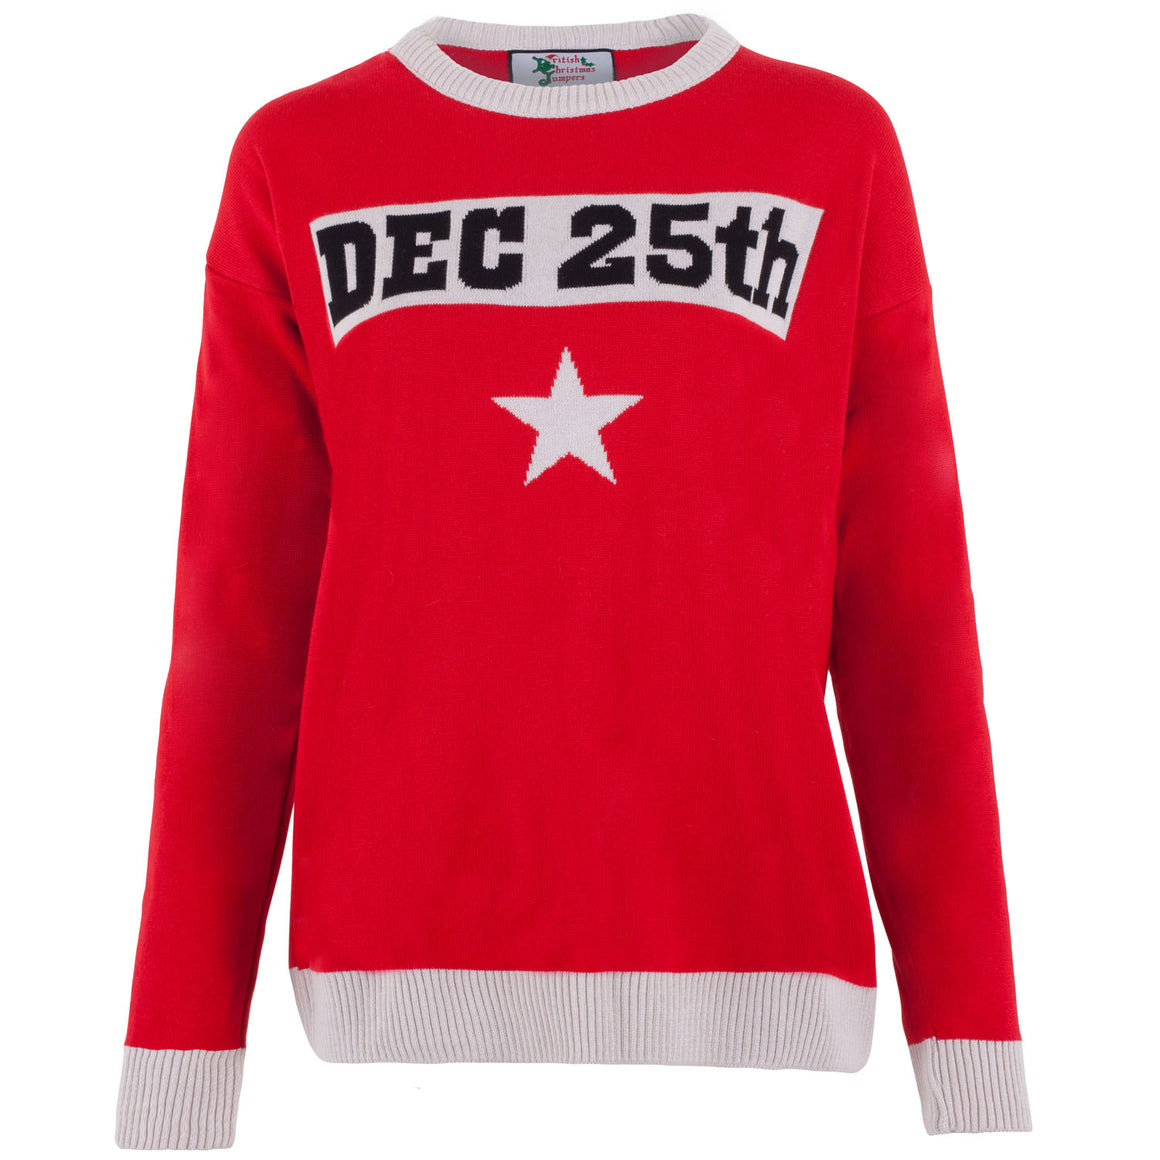 25th December Slogan - Womens Christmas Jumper